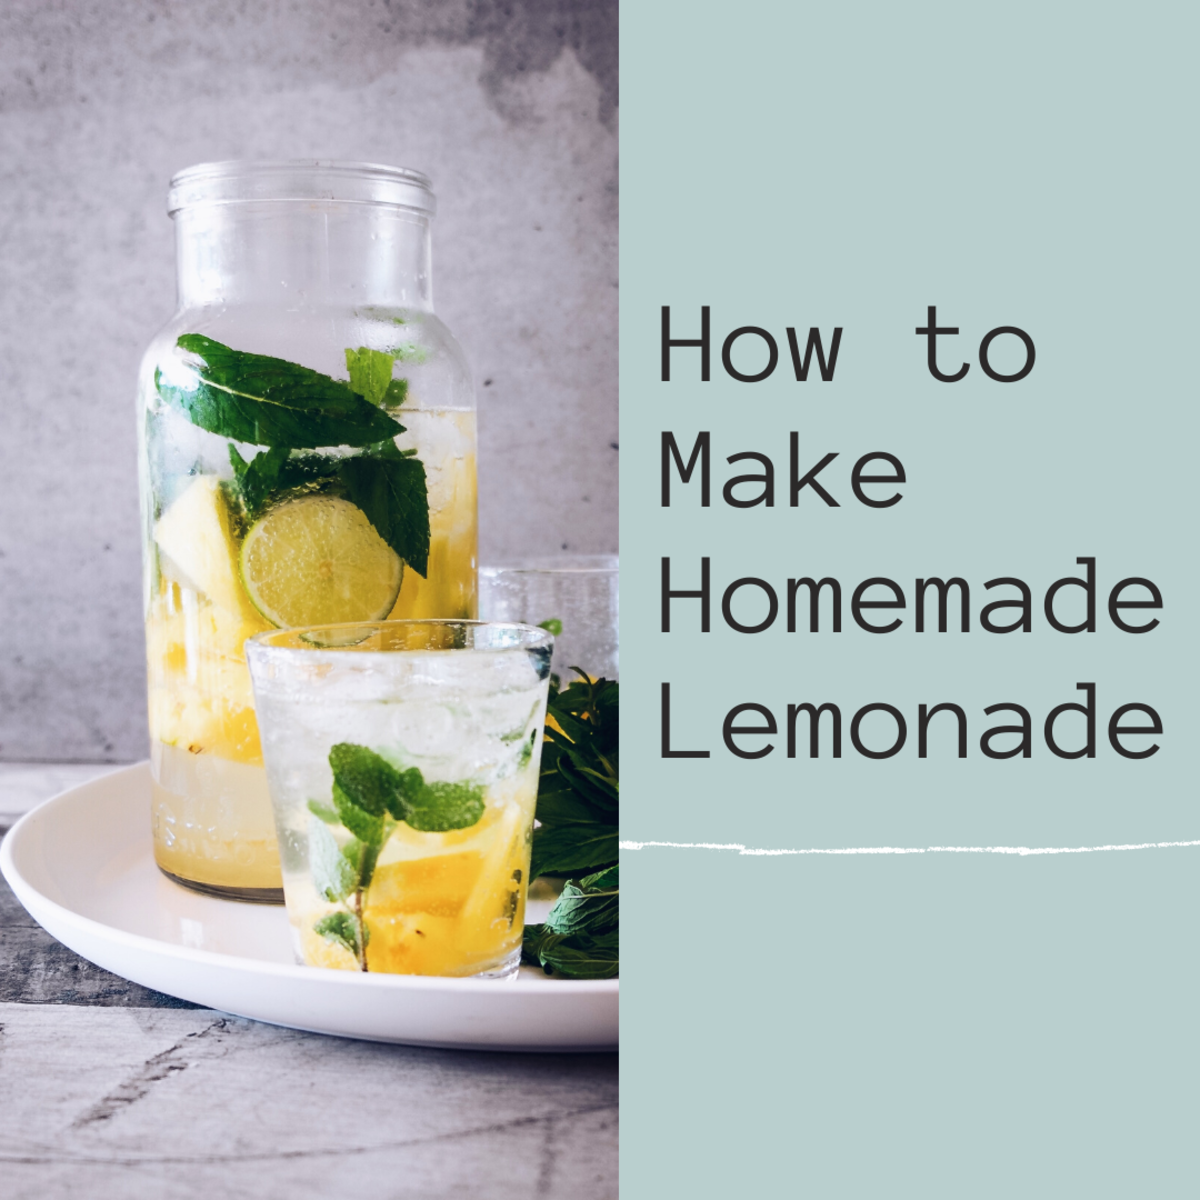 Making Homemade Lemonade